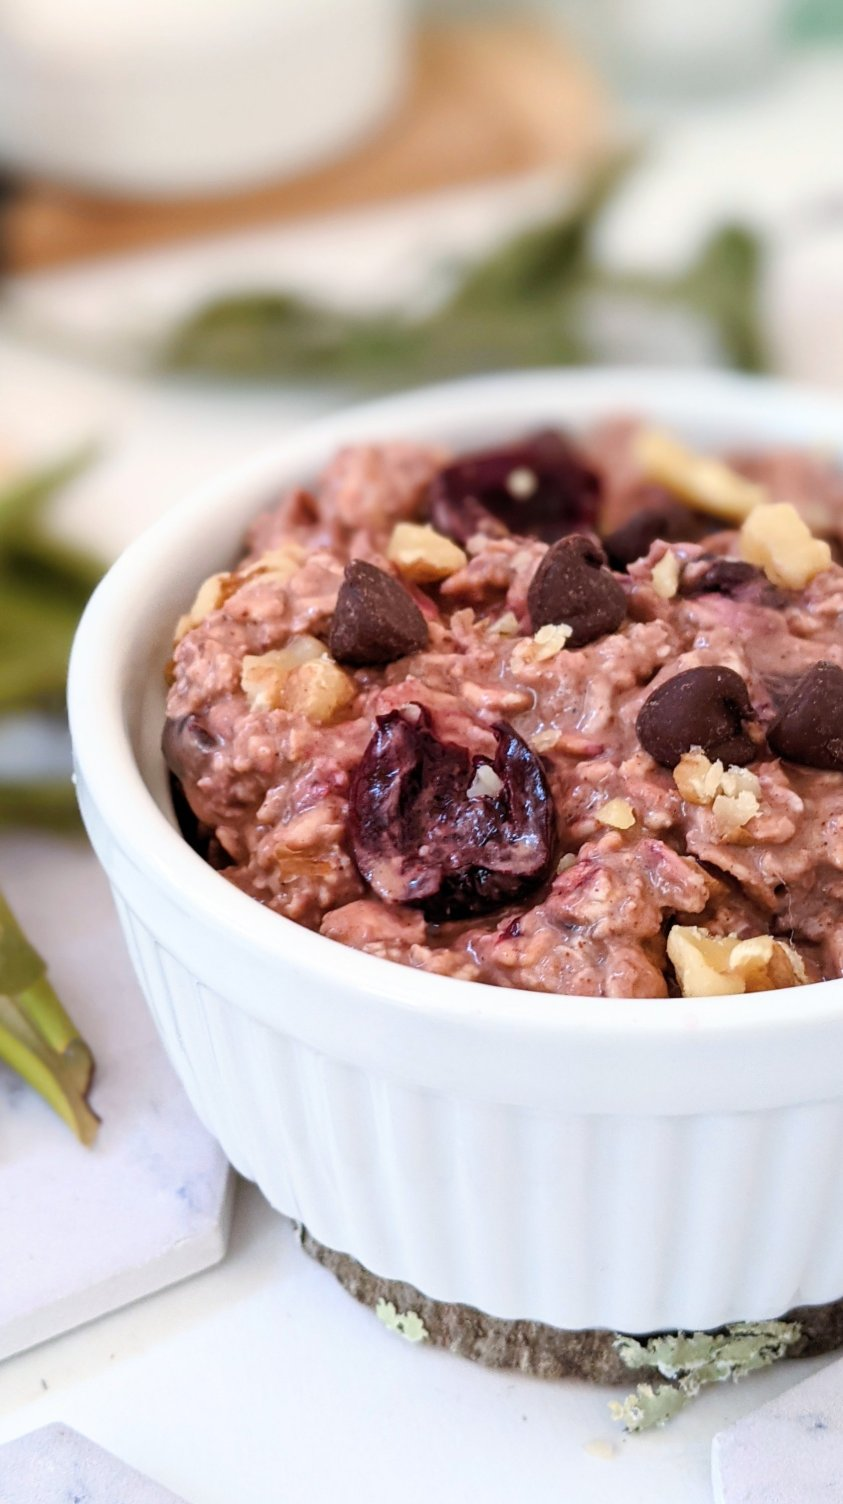 dark chocolate cherry overnight oats recipe vegan dairy free oatmeal recipe gluten free breakfasts with chocolate and cherries plant based cacao recipes for brunch or breakfast healthy